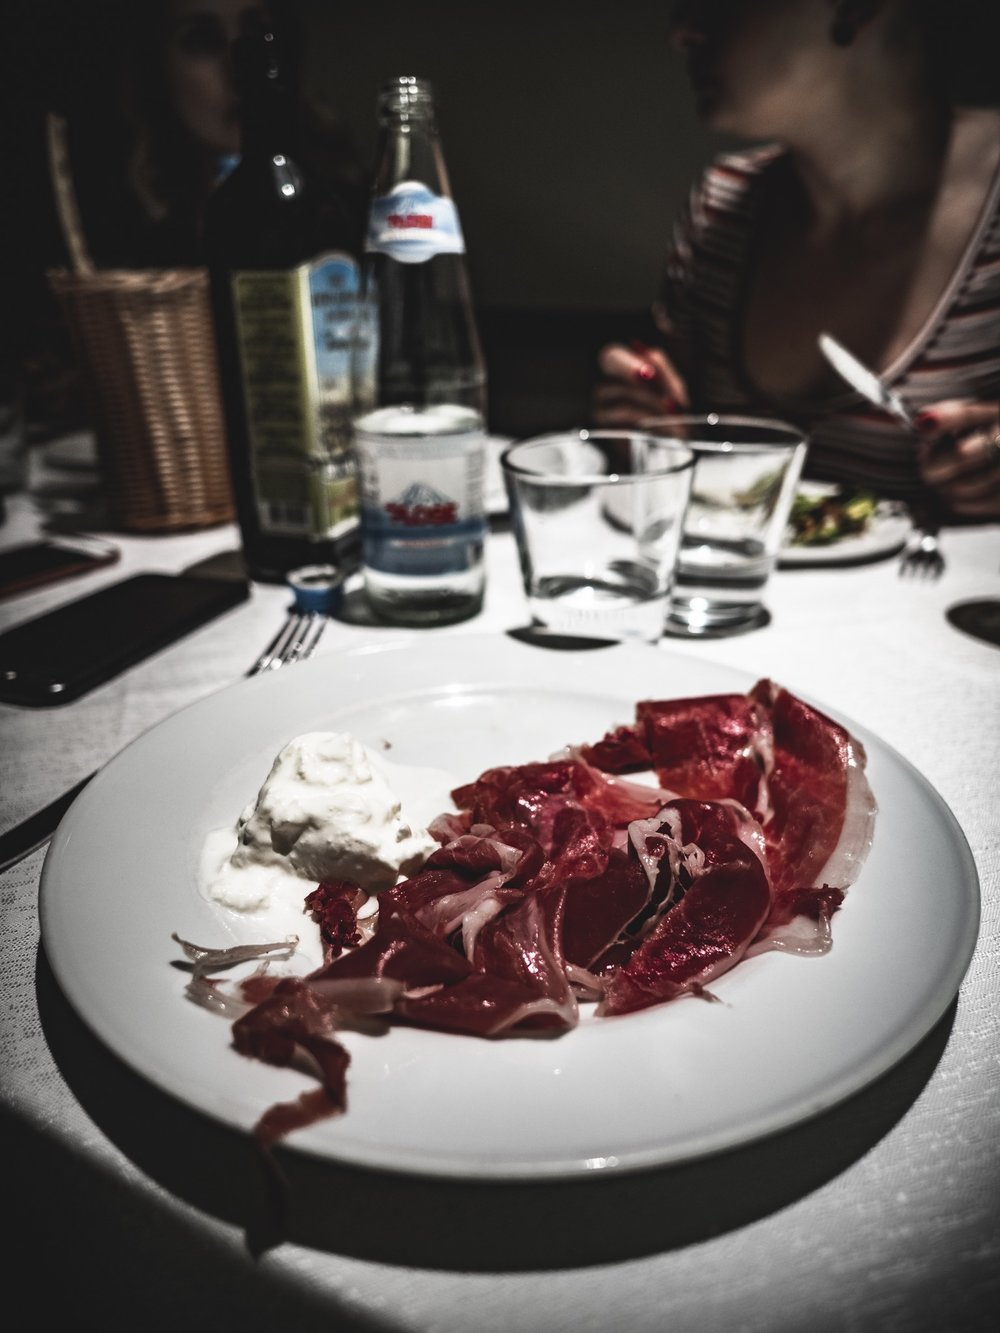 Carnivore Diet Zero Carb Diary Milan Italy Cured Meat Cheese Mozzarella Travel